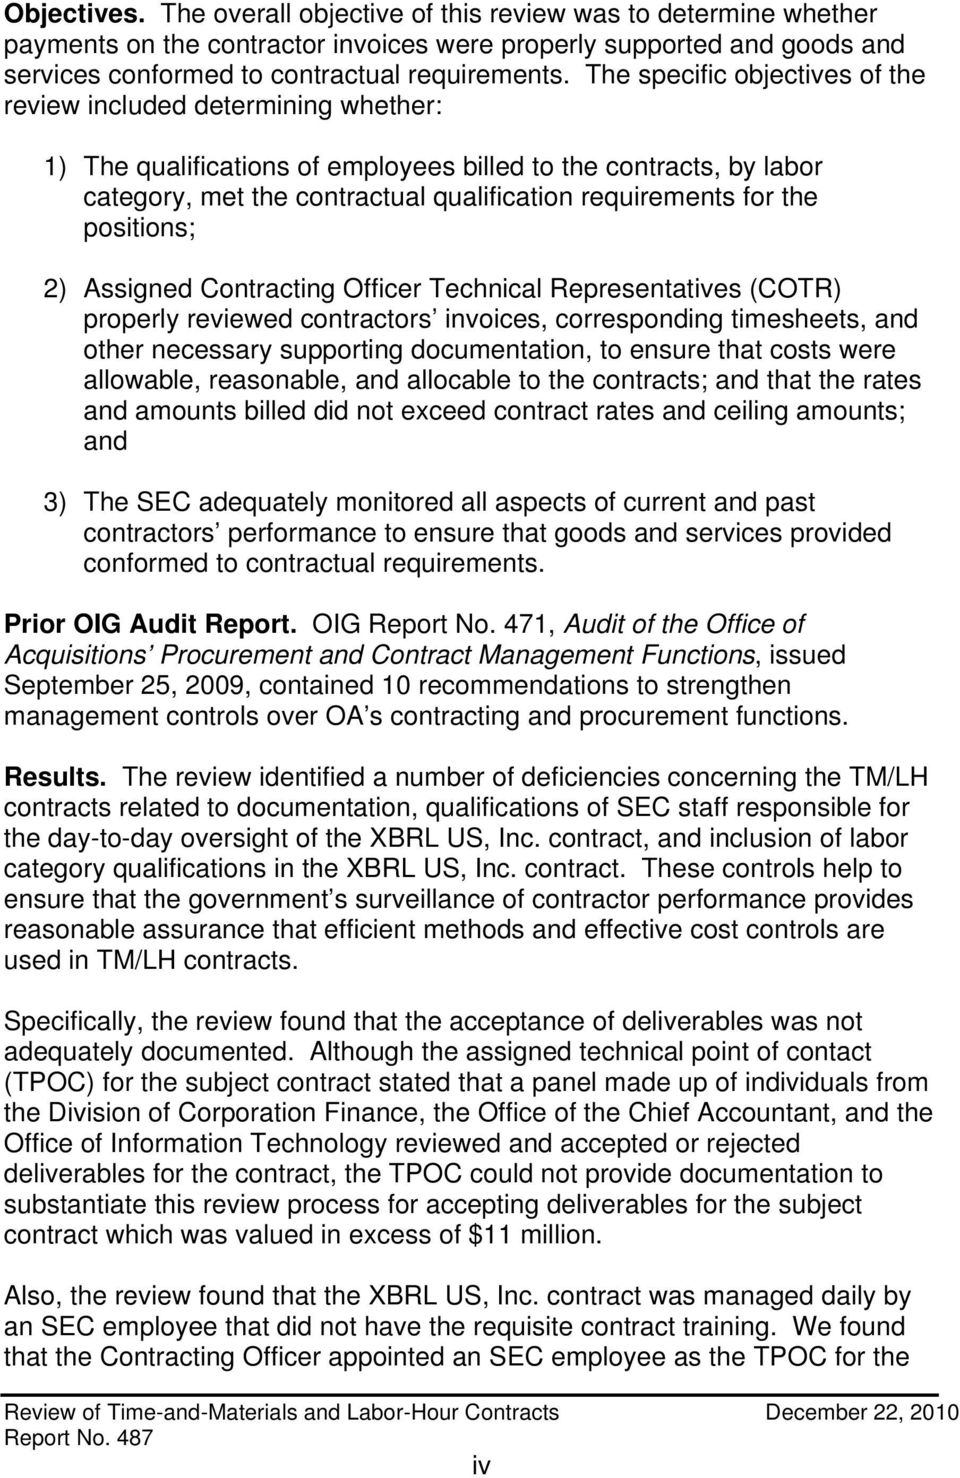 the positions; 2) Assigned Contracting Officer Technical Representatives (COTR) properly reviewed contractors invoices, corresponding timesheets, and other necessary supporting documentation, to